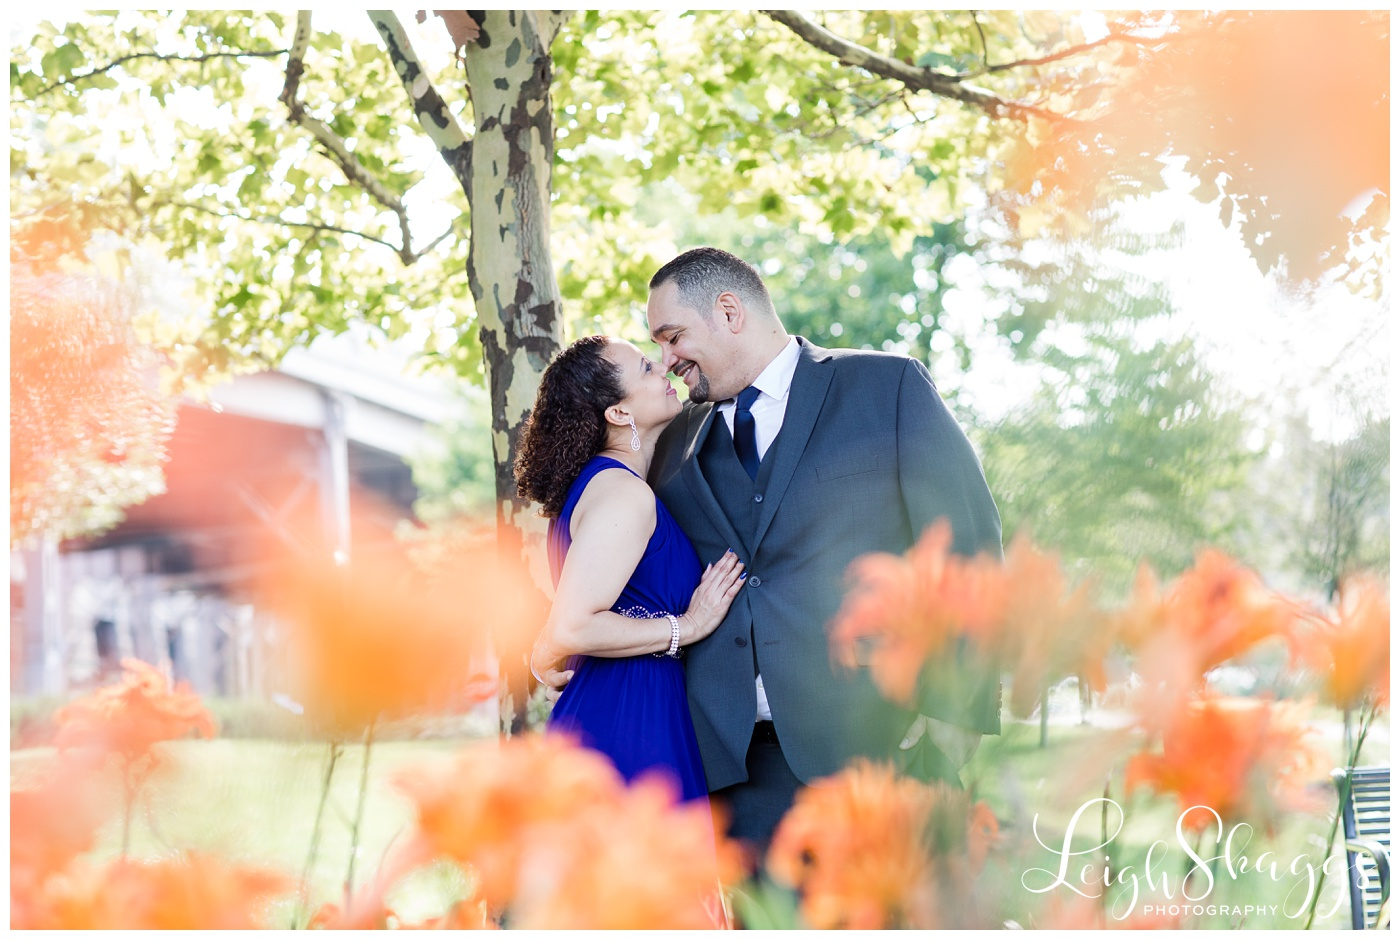 Valerie & Jose | Georgetown Engagement Session